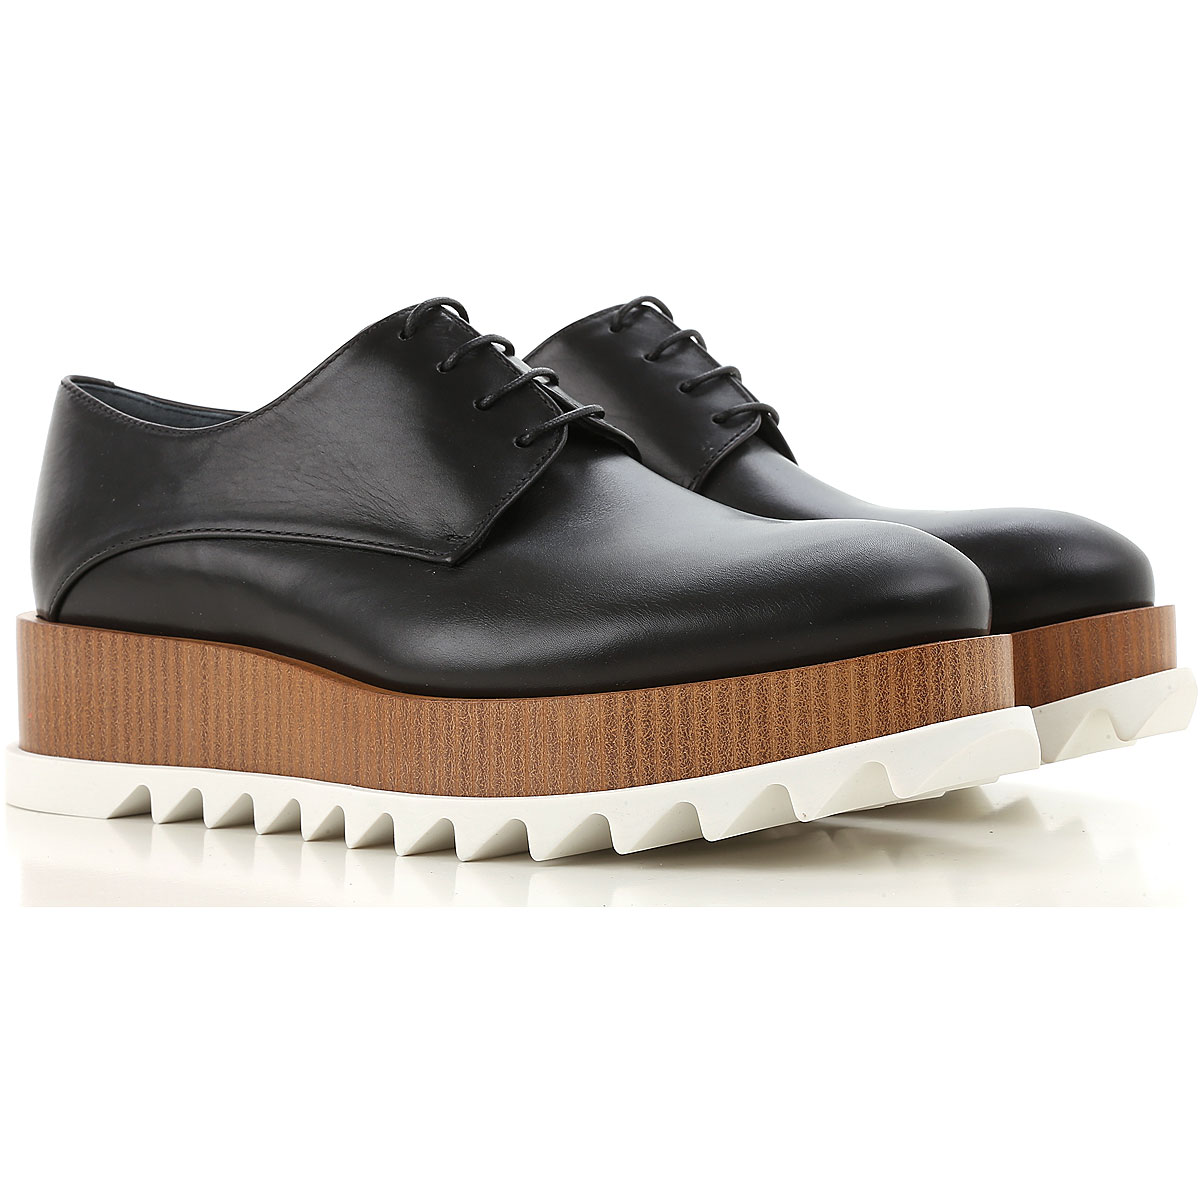 Jil Sander Brogues Oxford Shoes in Outlet Black Canada - GOOFASH -